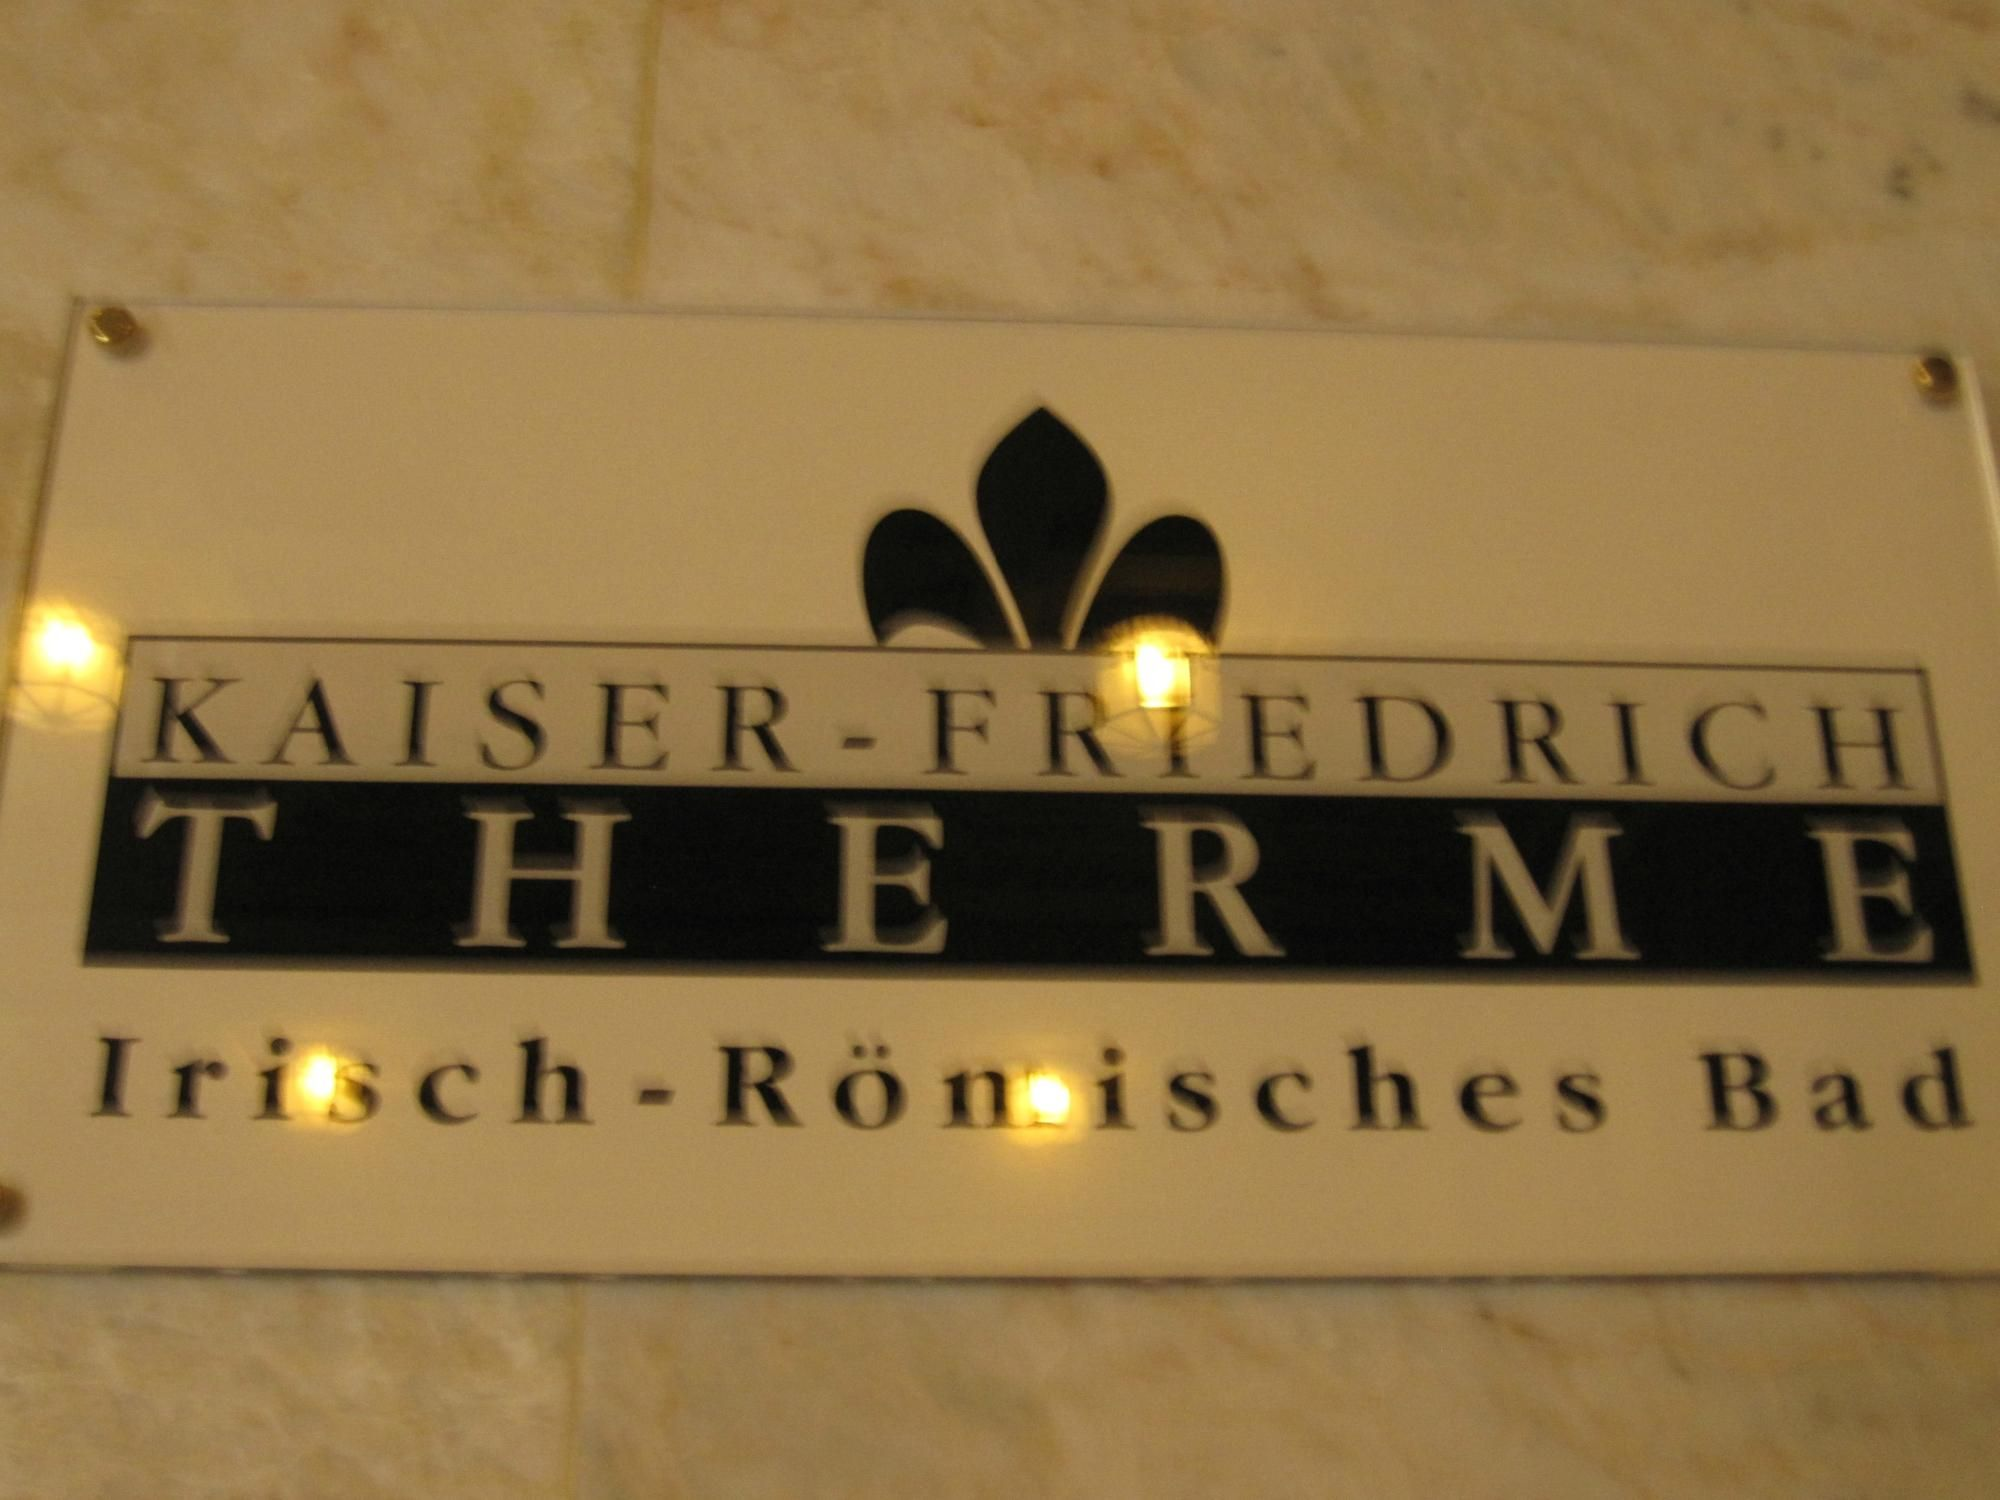 Kaiser Friedrich Therme (Wiesbaden) - All You Need to Know